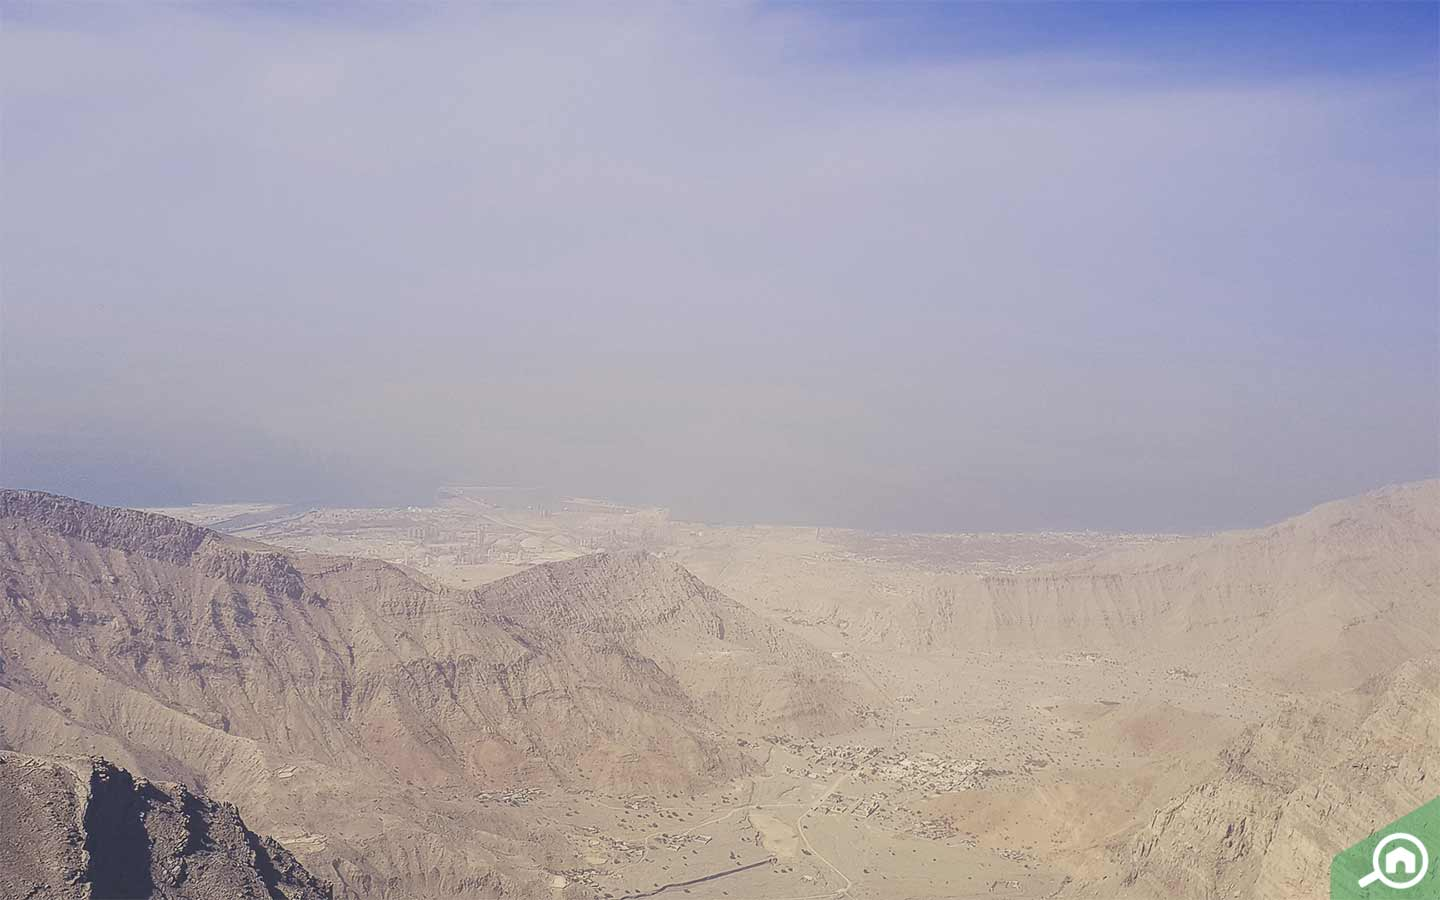 Jebel Jais is one of the biggest mountains in UAE